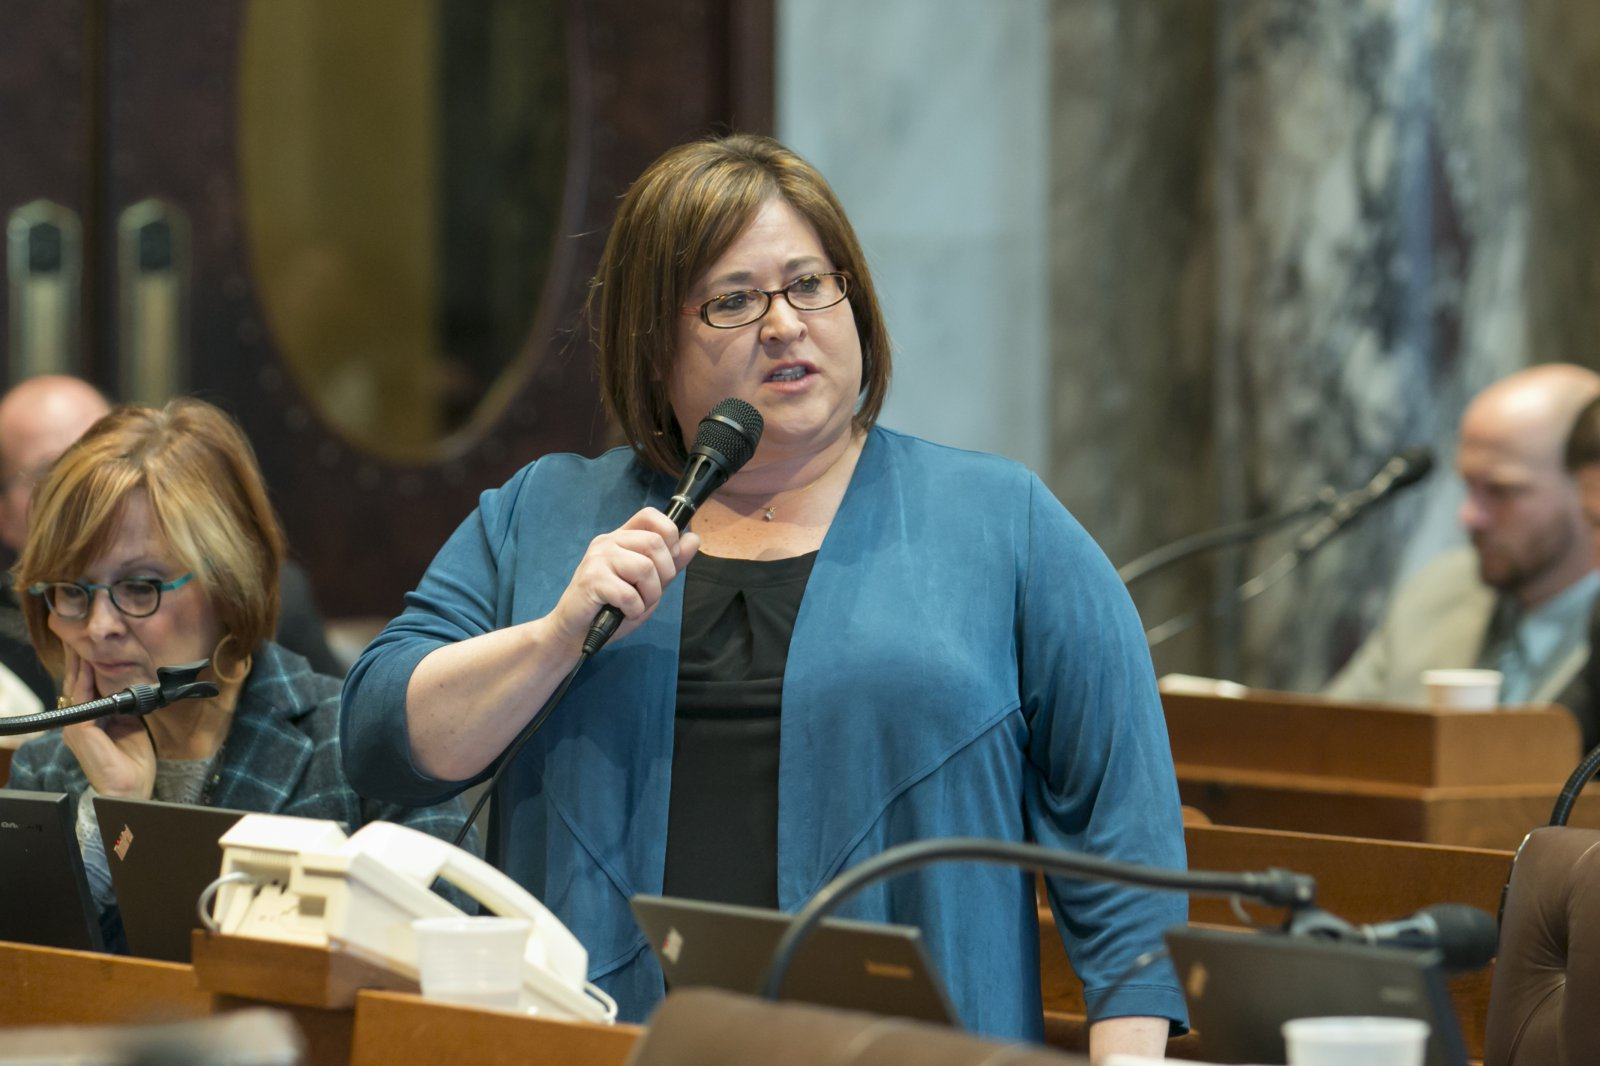 Rep. Lisa Subeck Joins Governor's Call to 'Get to Work' for the People